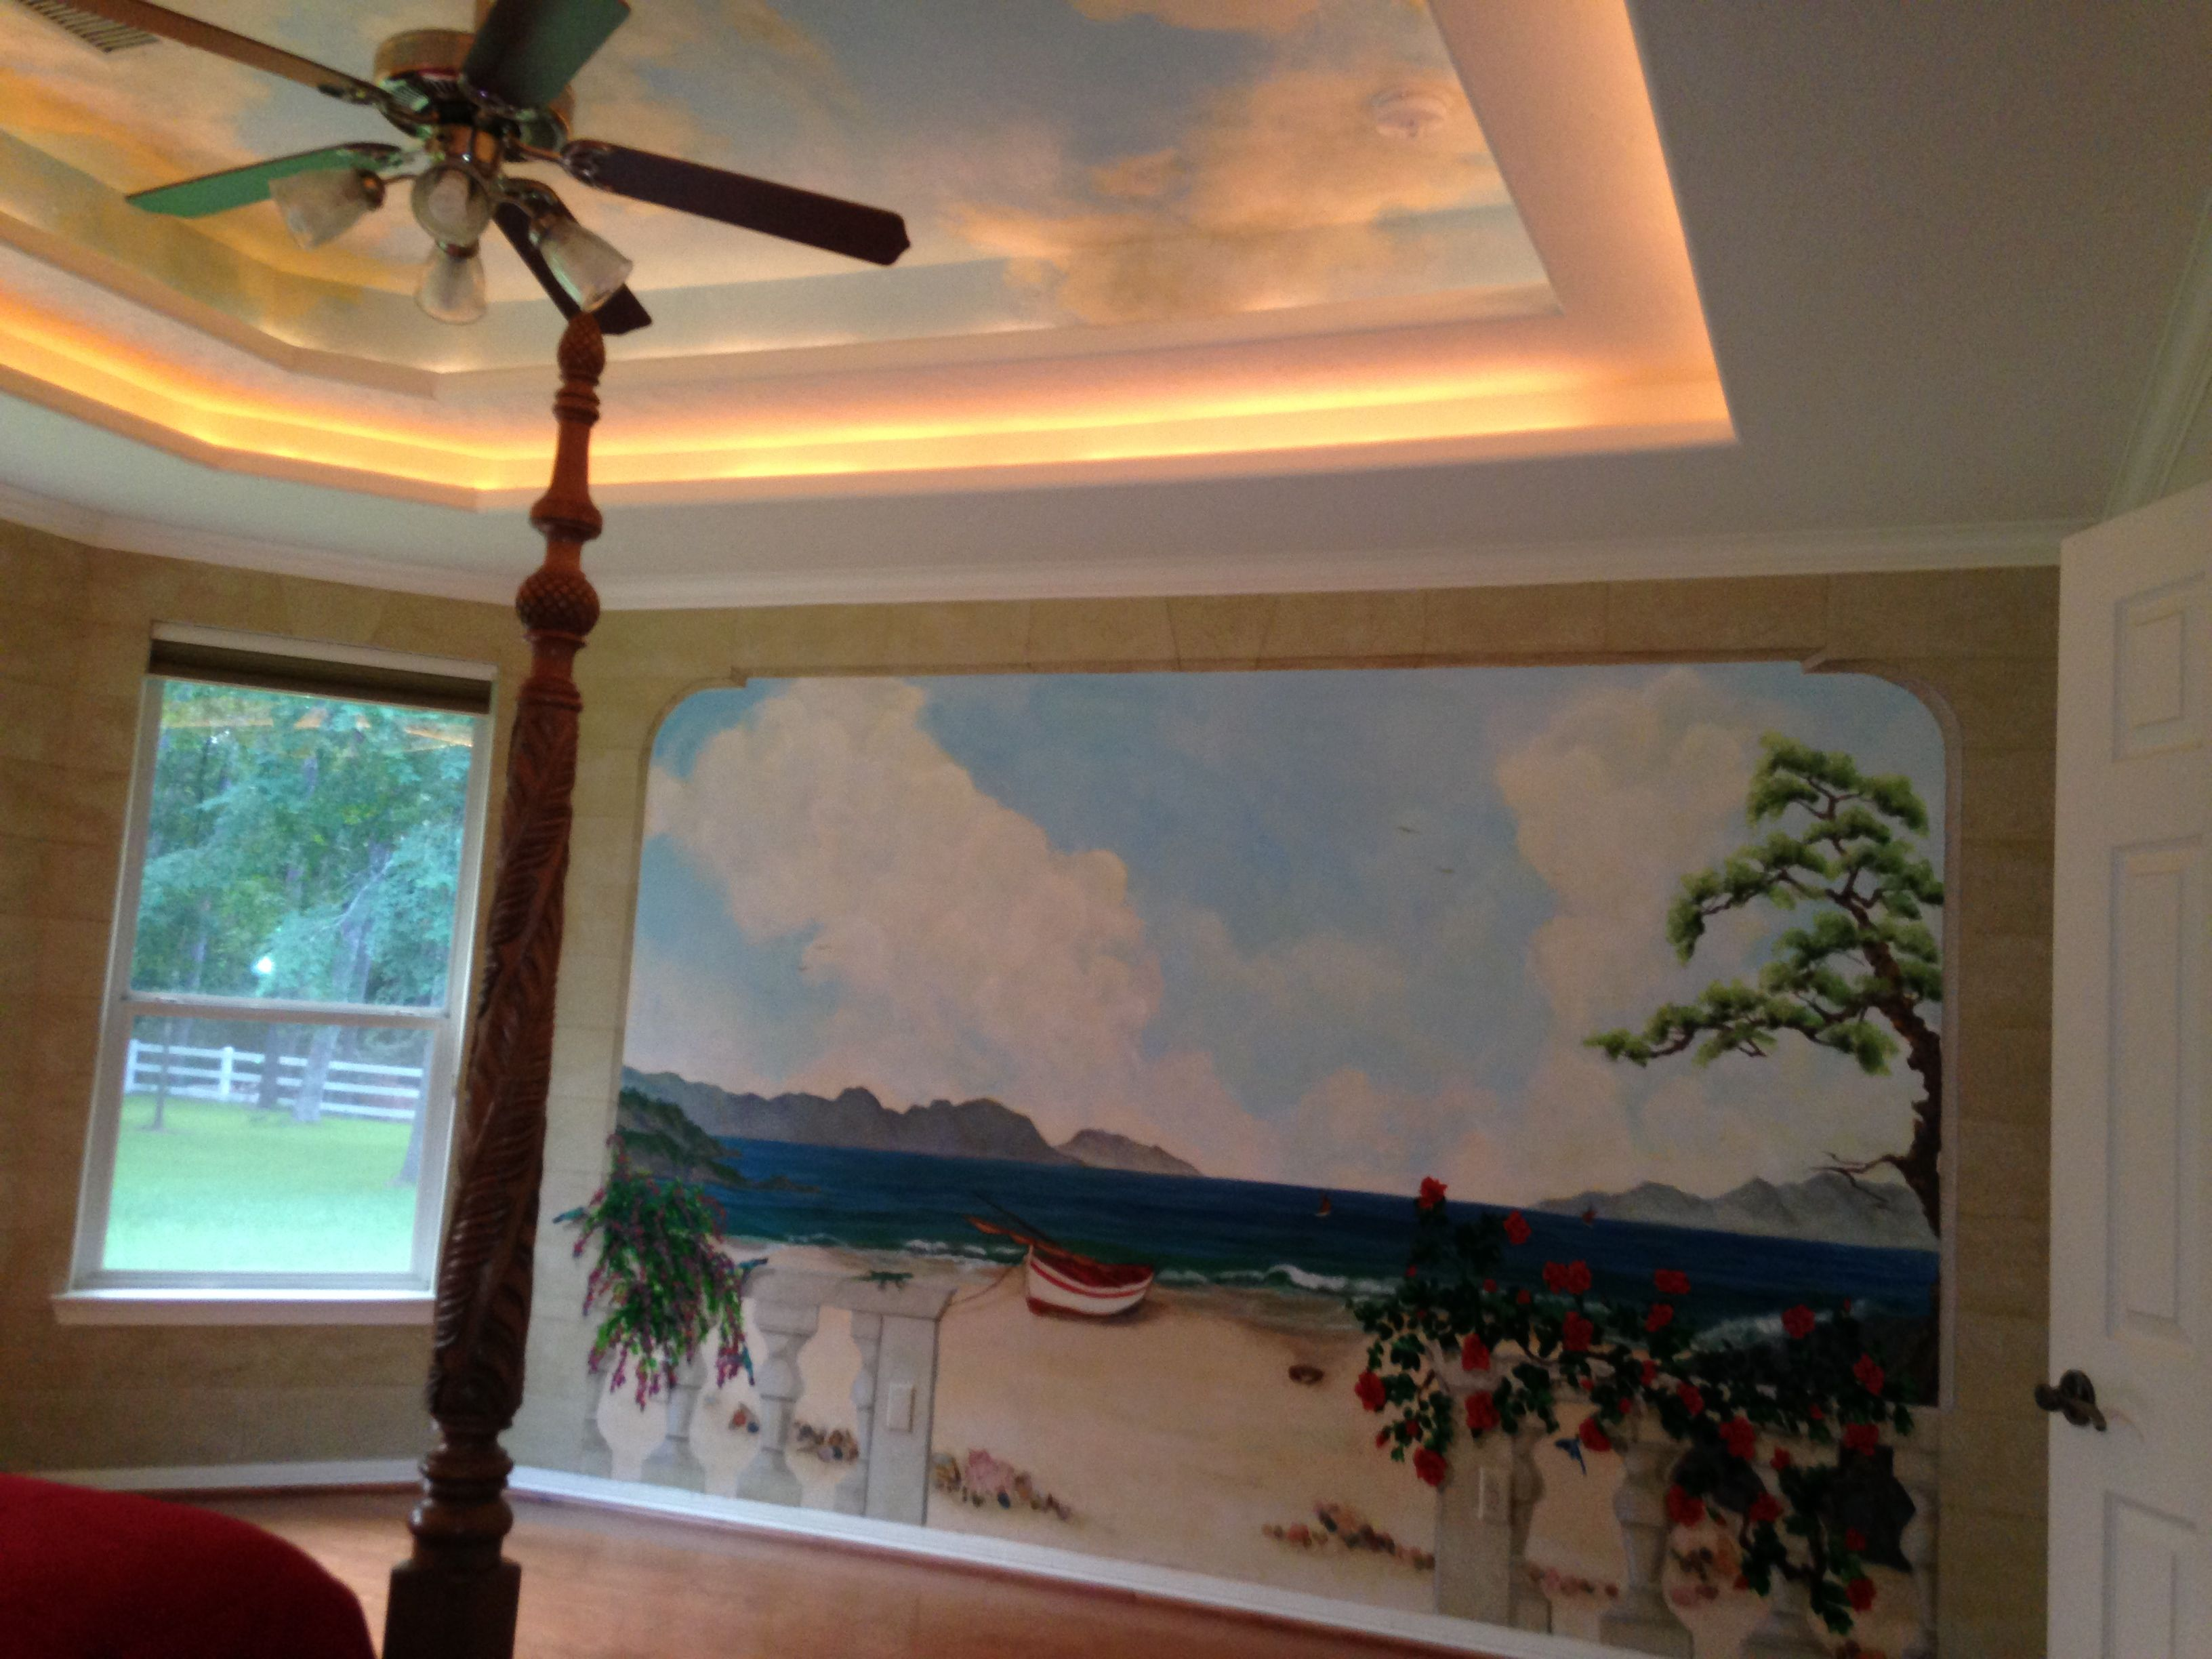 ceilings with mural art - photo #35